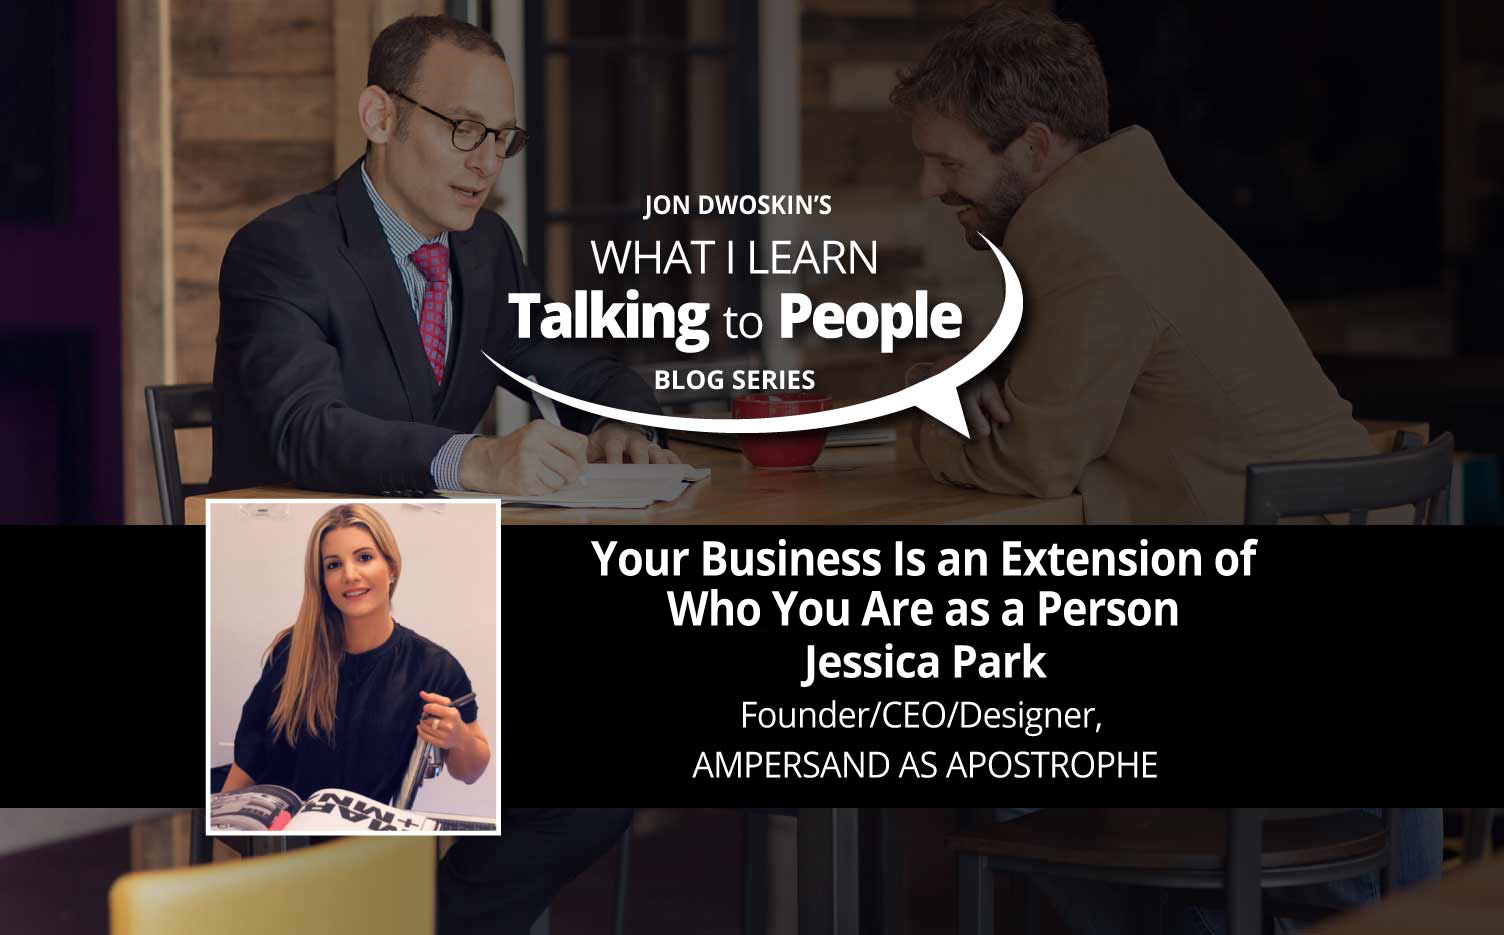 Jon Dwoskin's What I Learn From People Blog: Your Business is an Extension of Who You are as a Person - Jessica Park